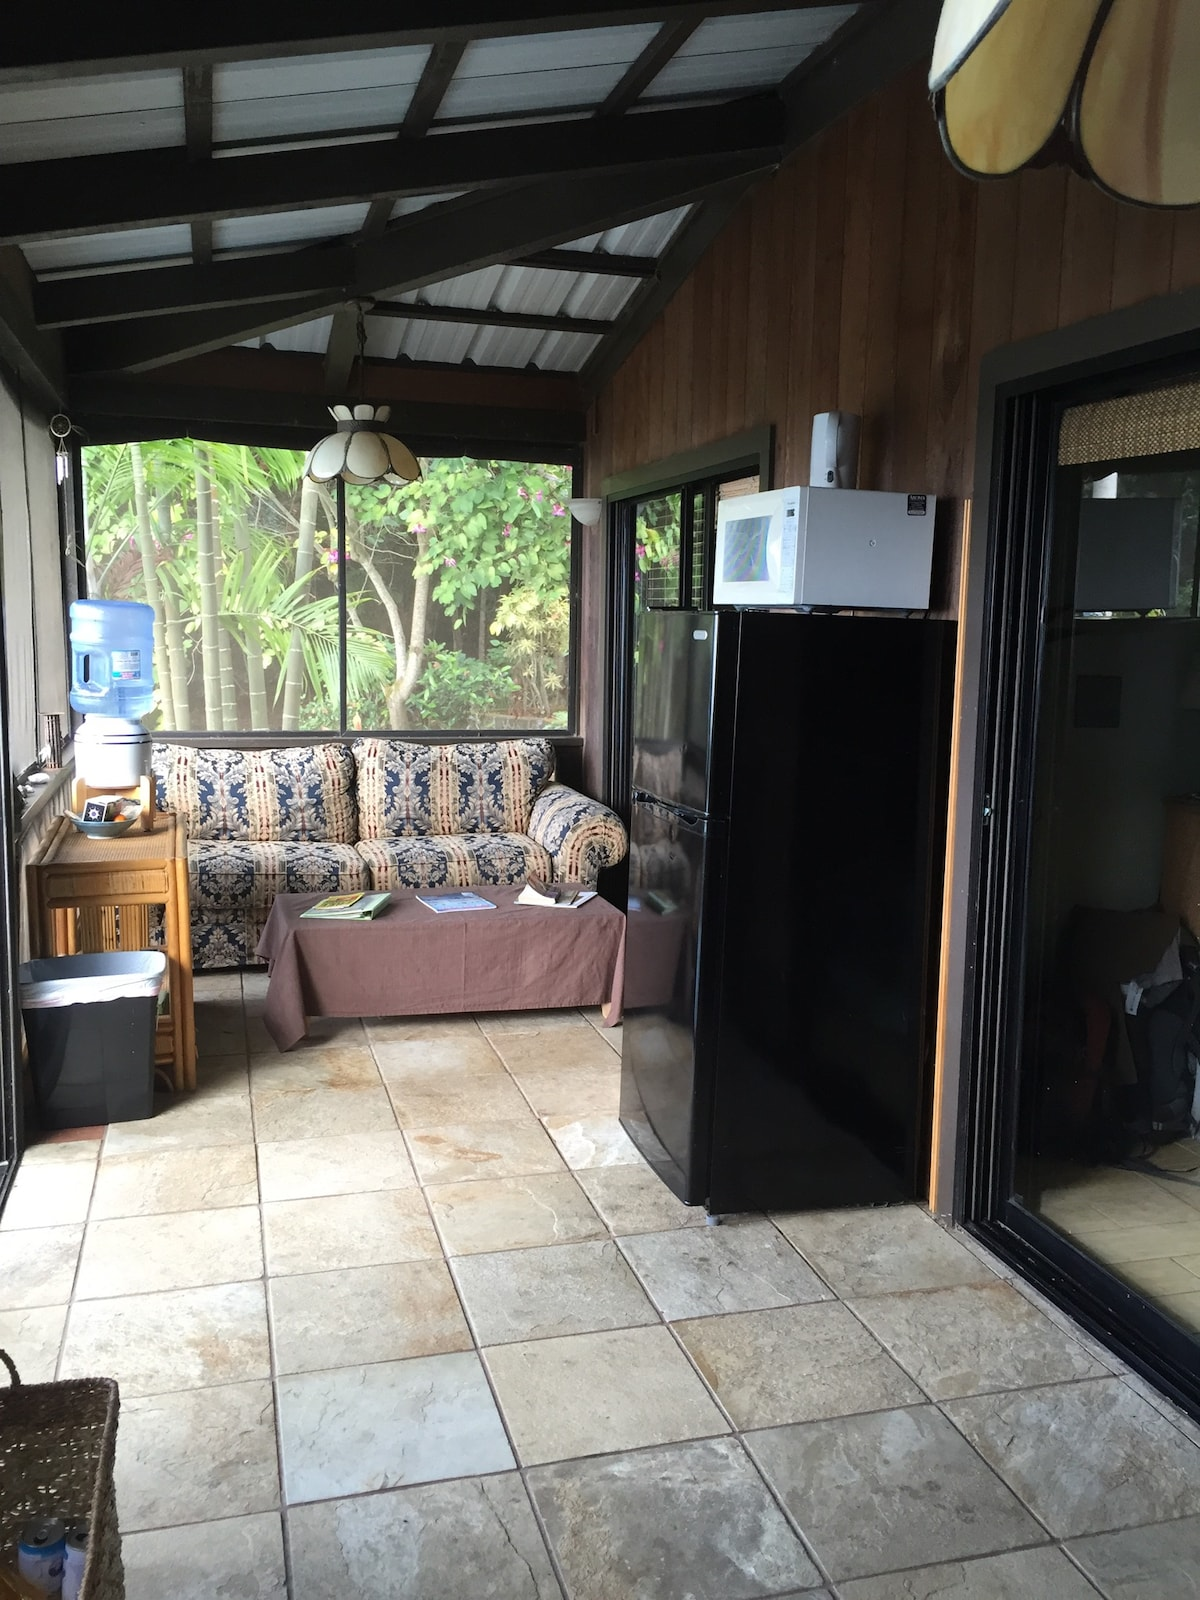 Spacious sunroom. Apartment size fridge, microwave, single burner induction cooktop, toaster and hot water kettle. Sofa at the far end of the room is your designated sofa. Perfect for relaxing or an extra guest. NOTE: The fridge and kitchen style amenitie